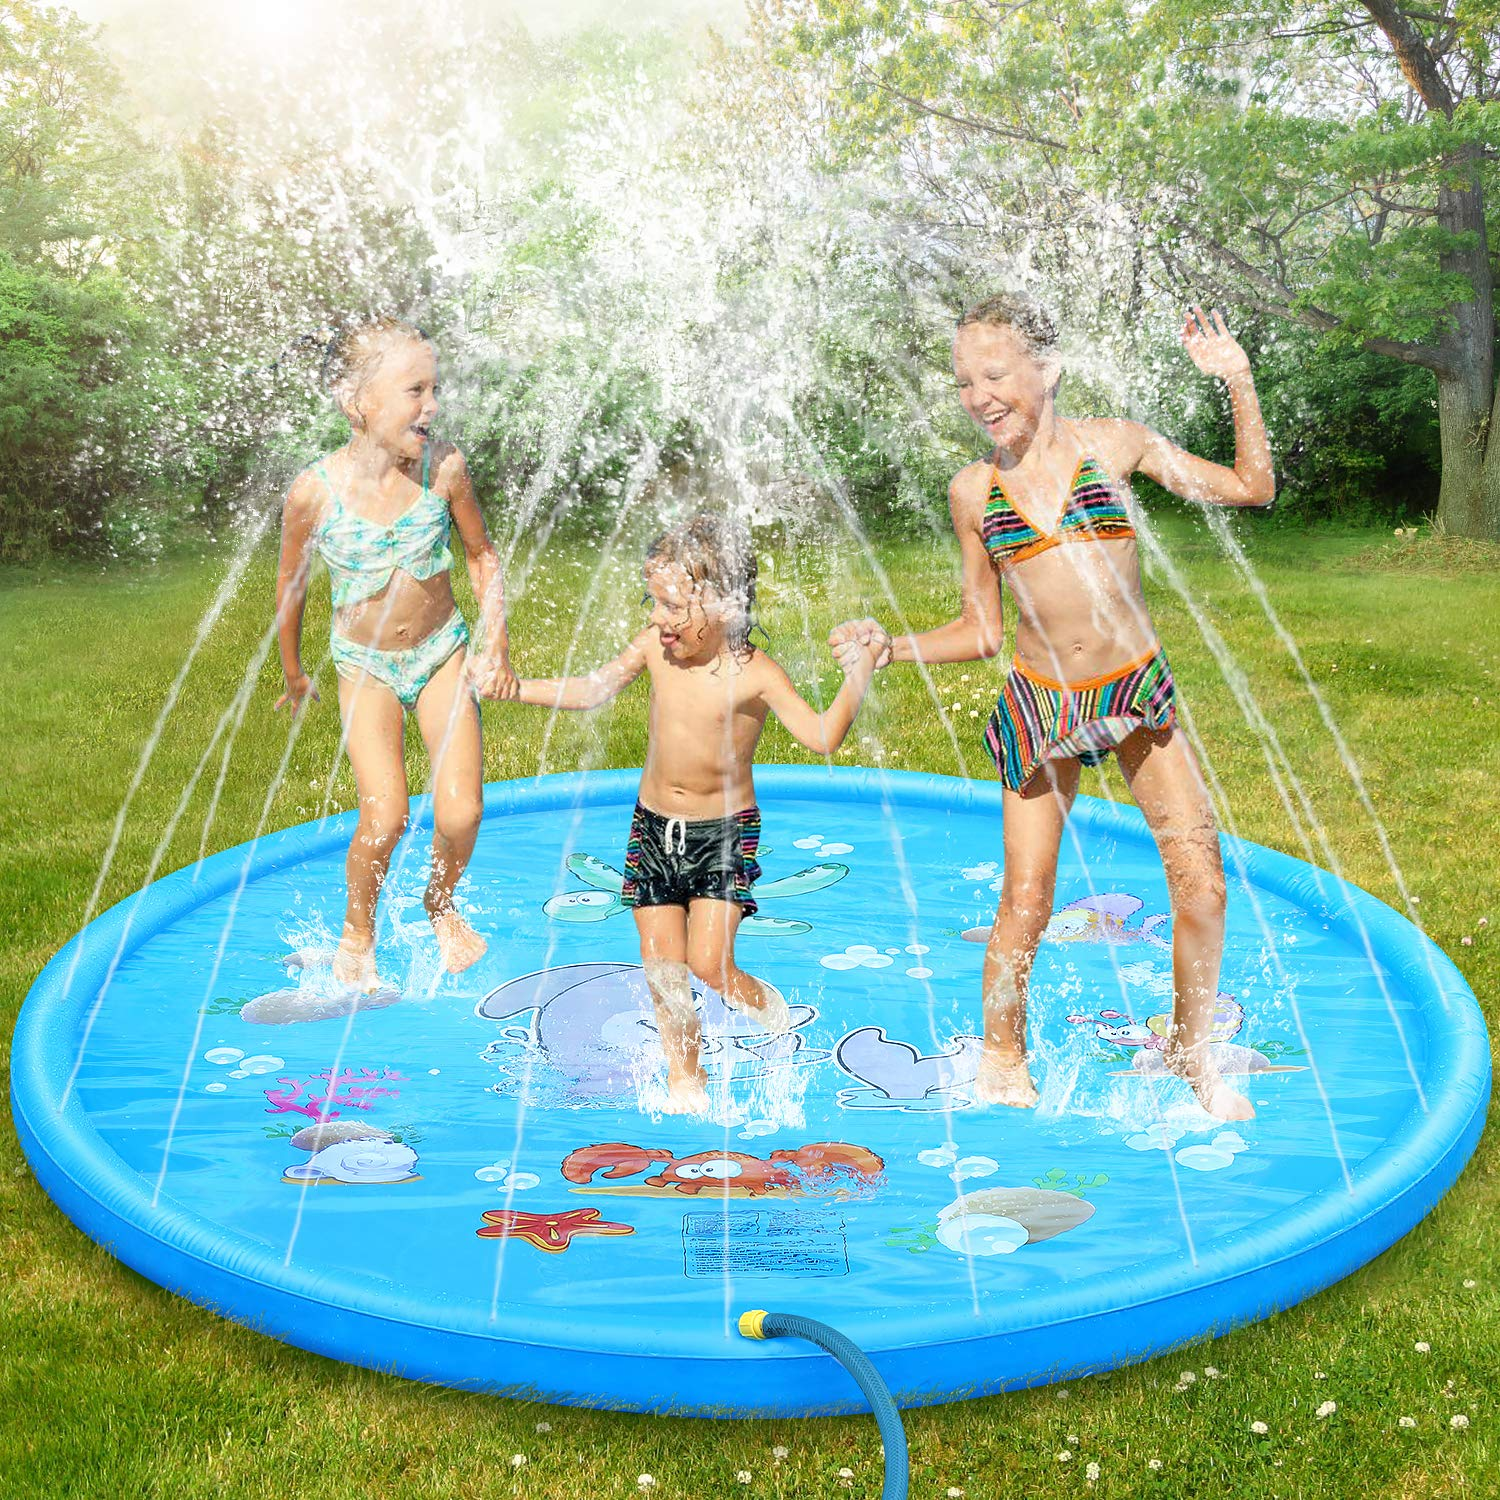 Splash Pad Burst Sprinkle Splash Play Mat For Kids Fun Splash Play Mat Summer Outdoor Party Water Toy Extra Large Sprinkler Pool